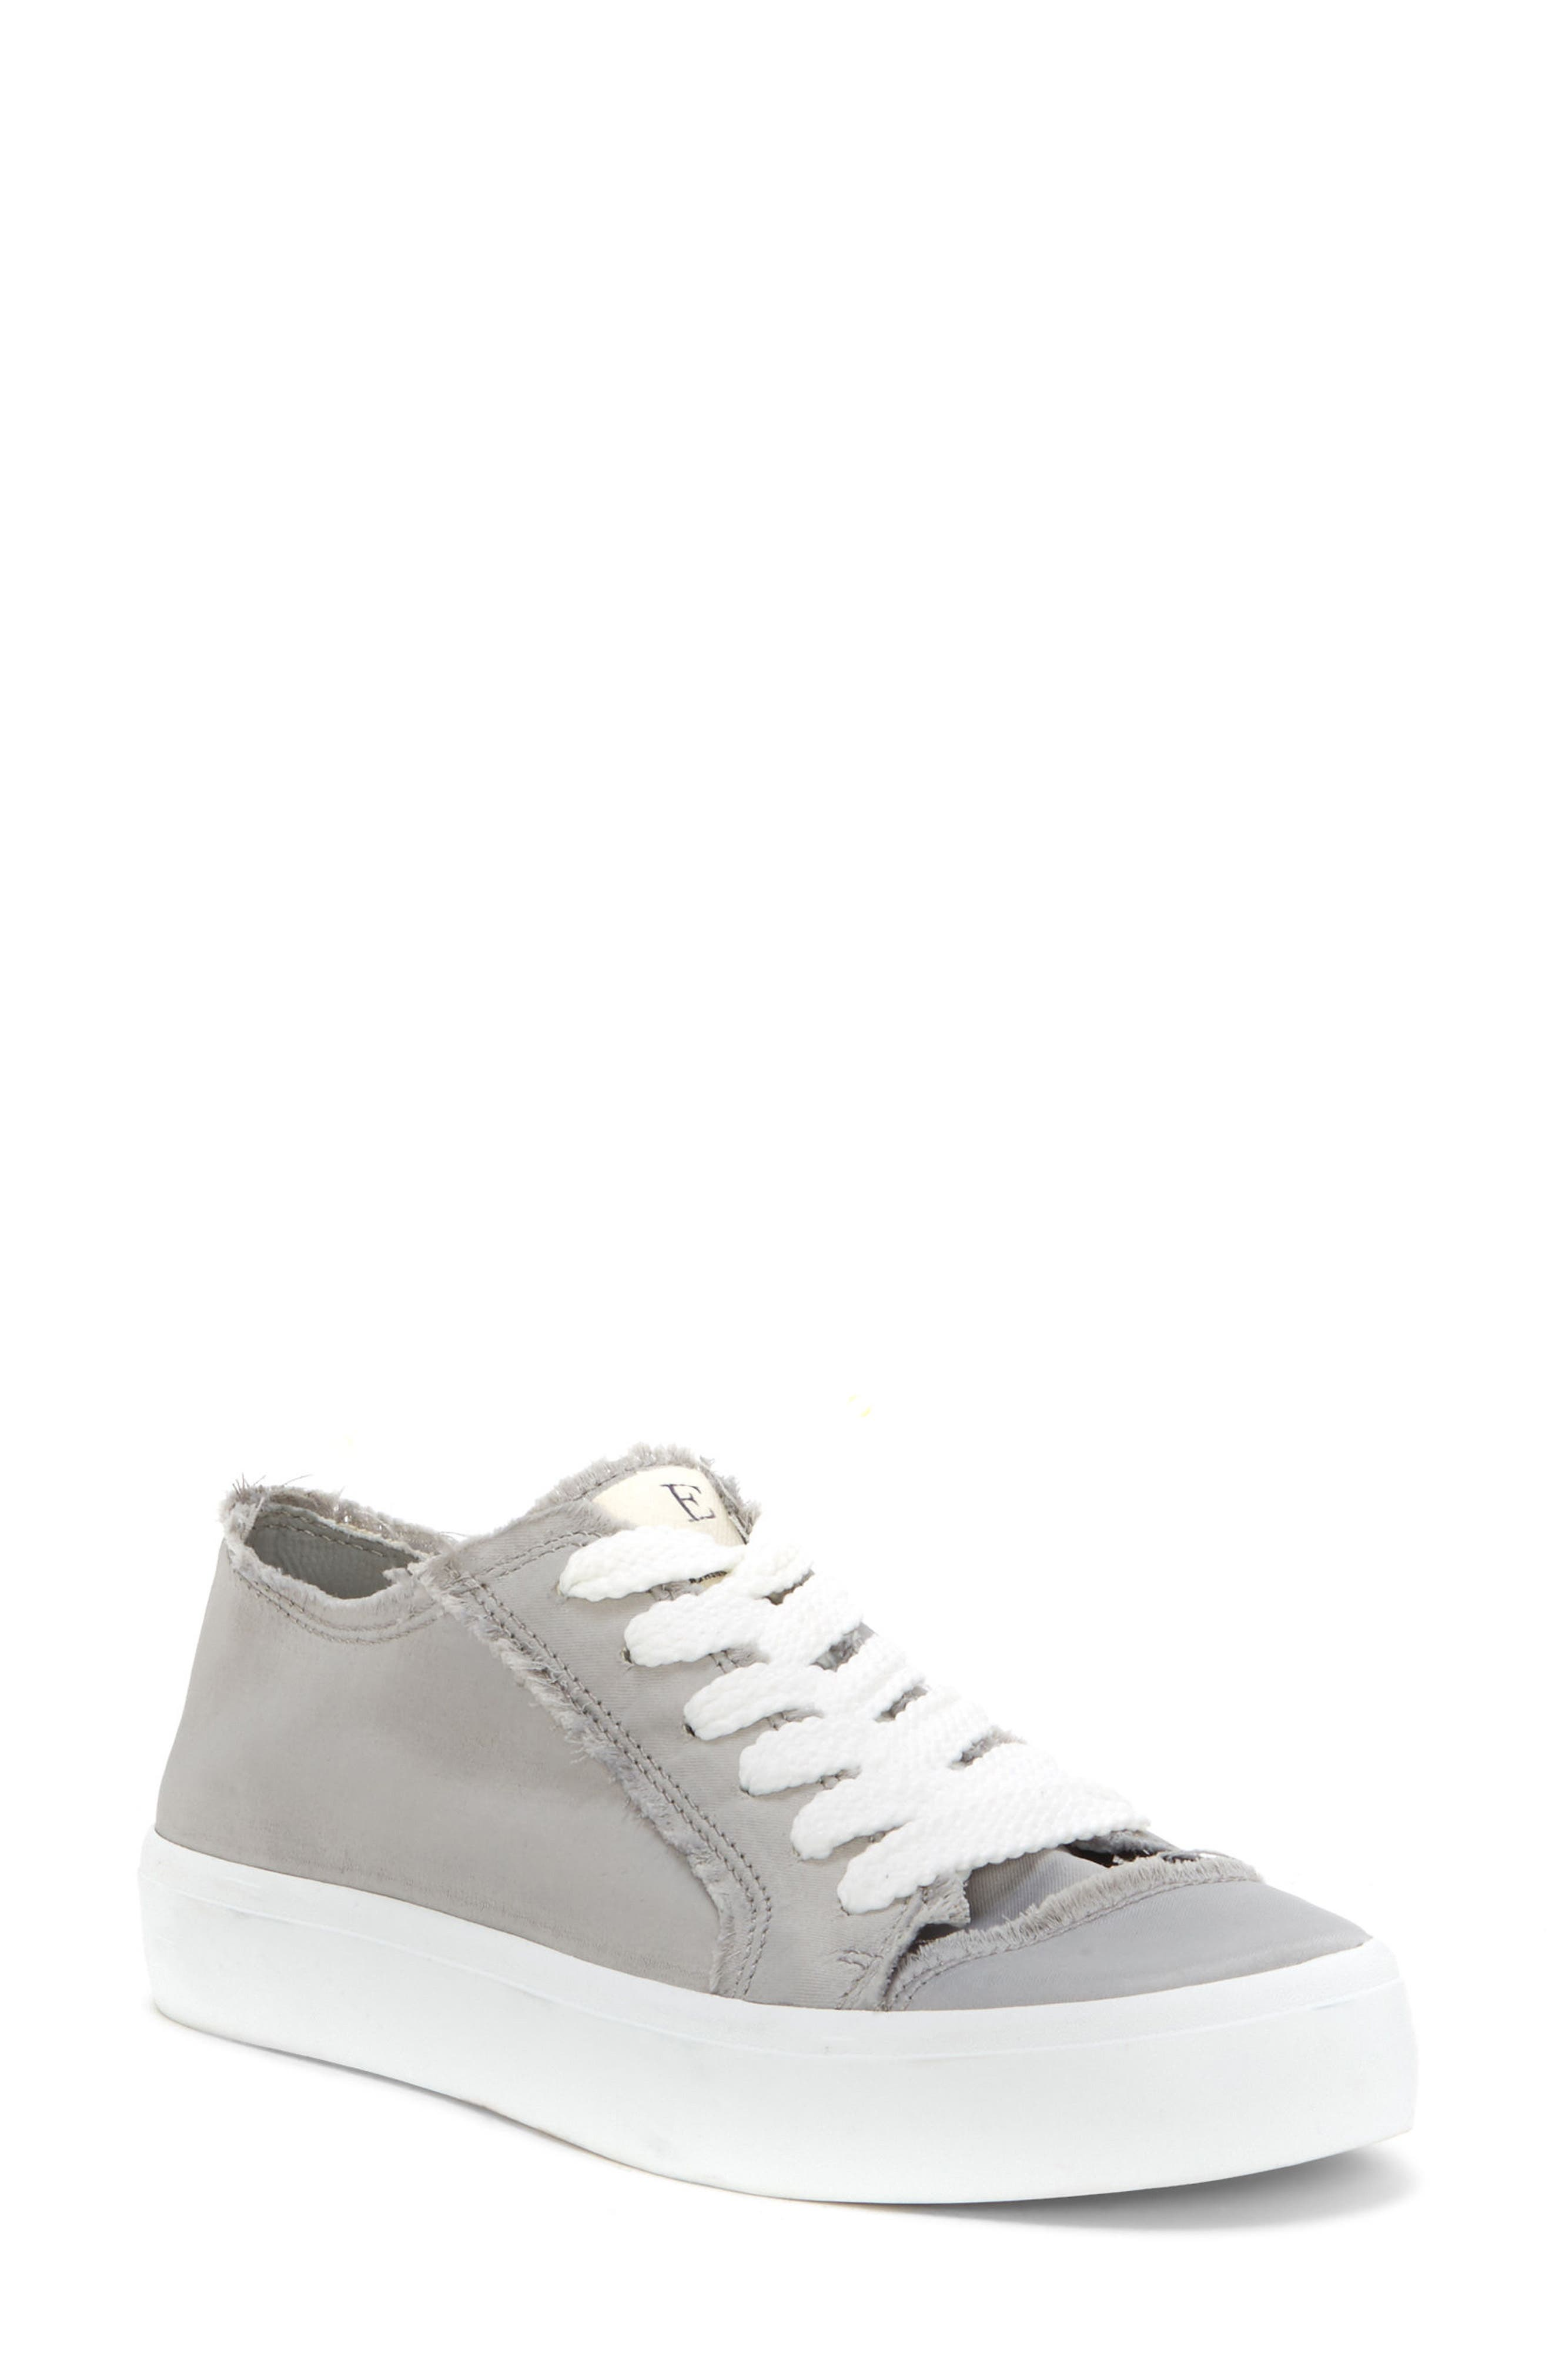 Dorin Sneaker,                             Main thumbnail 1, color,                             Gravel Fabric